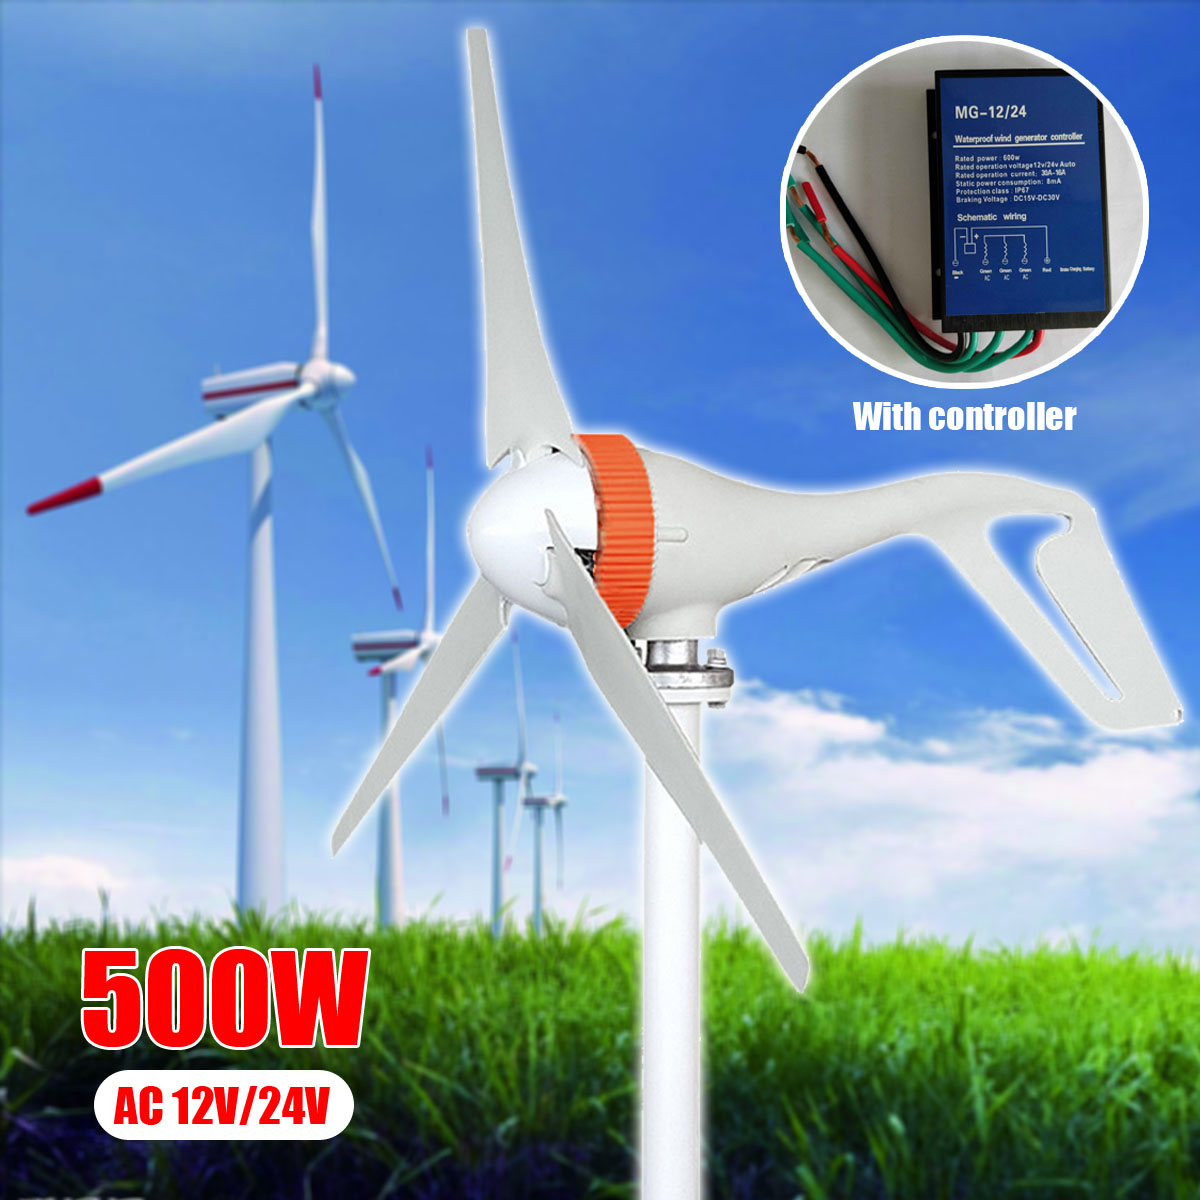 AC 12V/24V 500W Miniature Wind Turbines Generator Mini Wind Turbines With Controller 3 Blades Wind Generator for Home Use цена